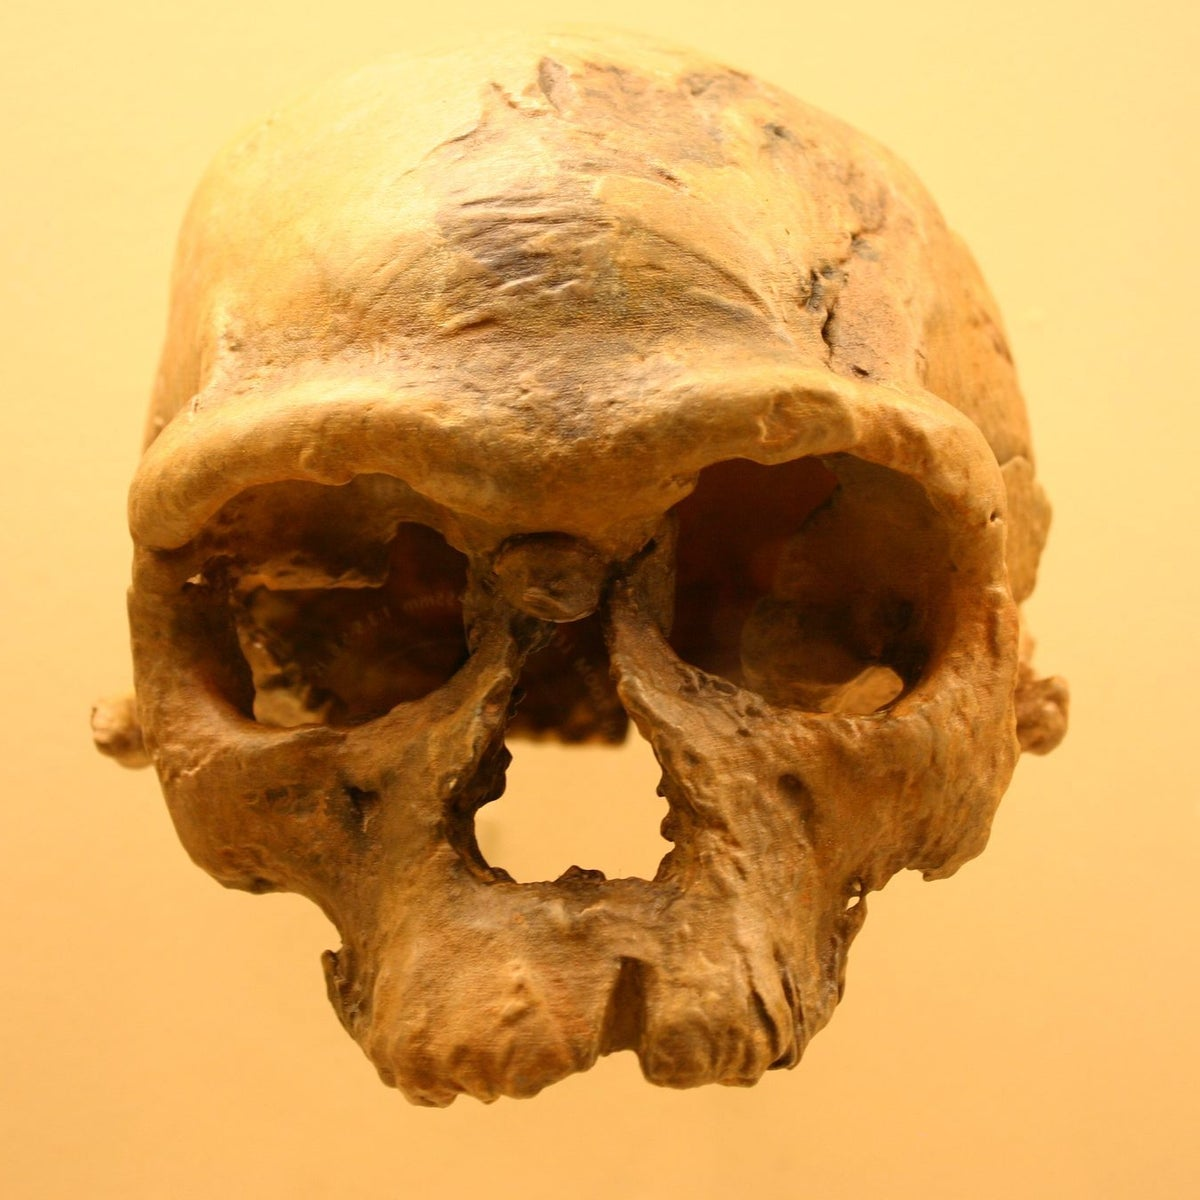 Jebel Irhoud Man: This primitive skull found in Jebel Irhoud, Morocco had originally been thought to be Neanderthal. Recent analysis indicates it's a Homo sapiens skull dating to around 300,000 years ago.